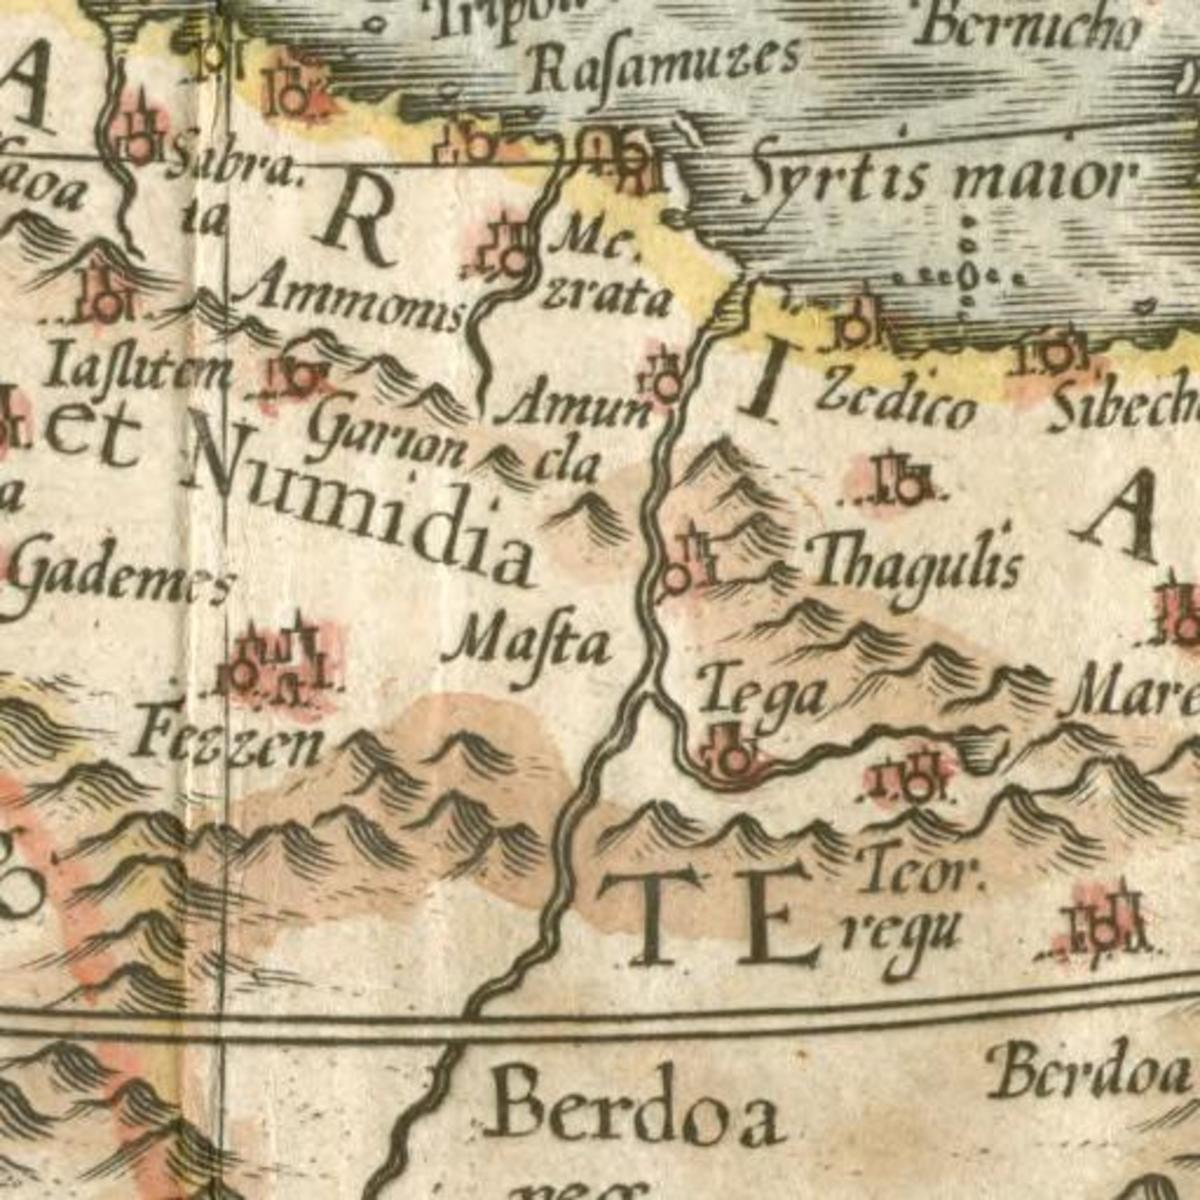 Ammon North Africa 1727